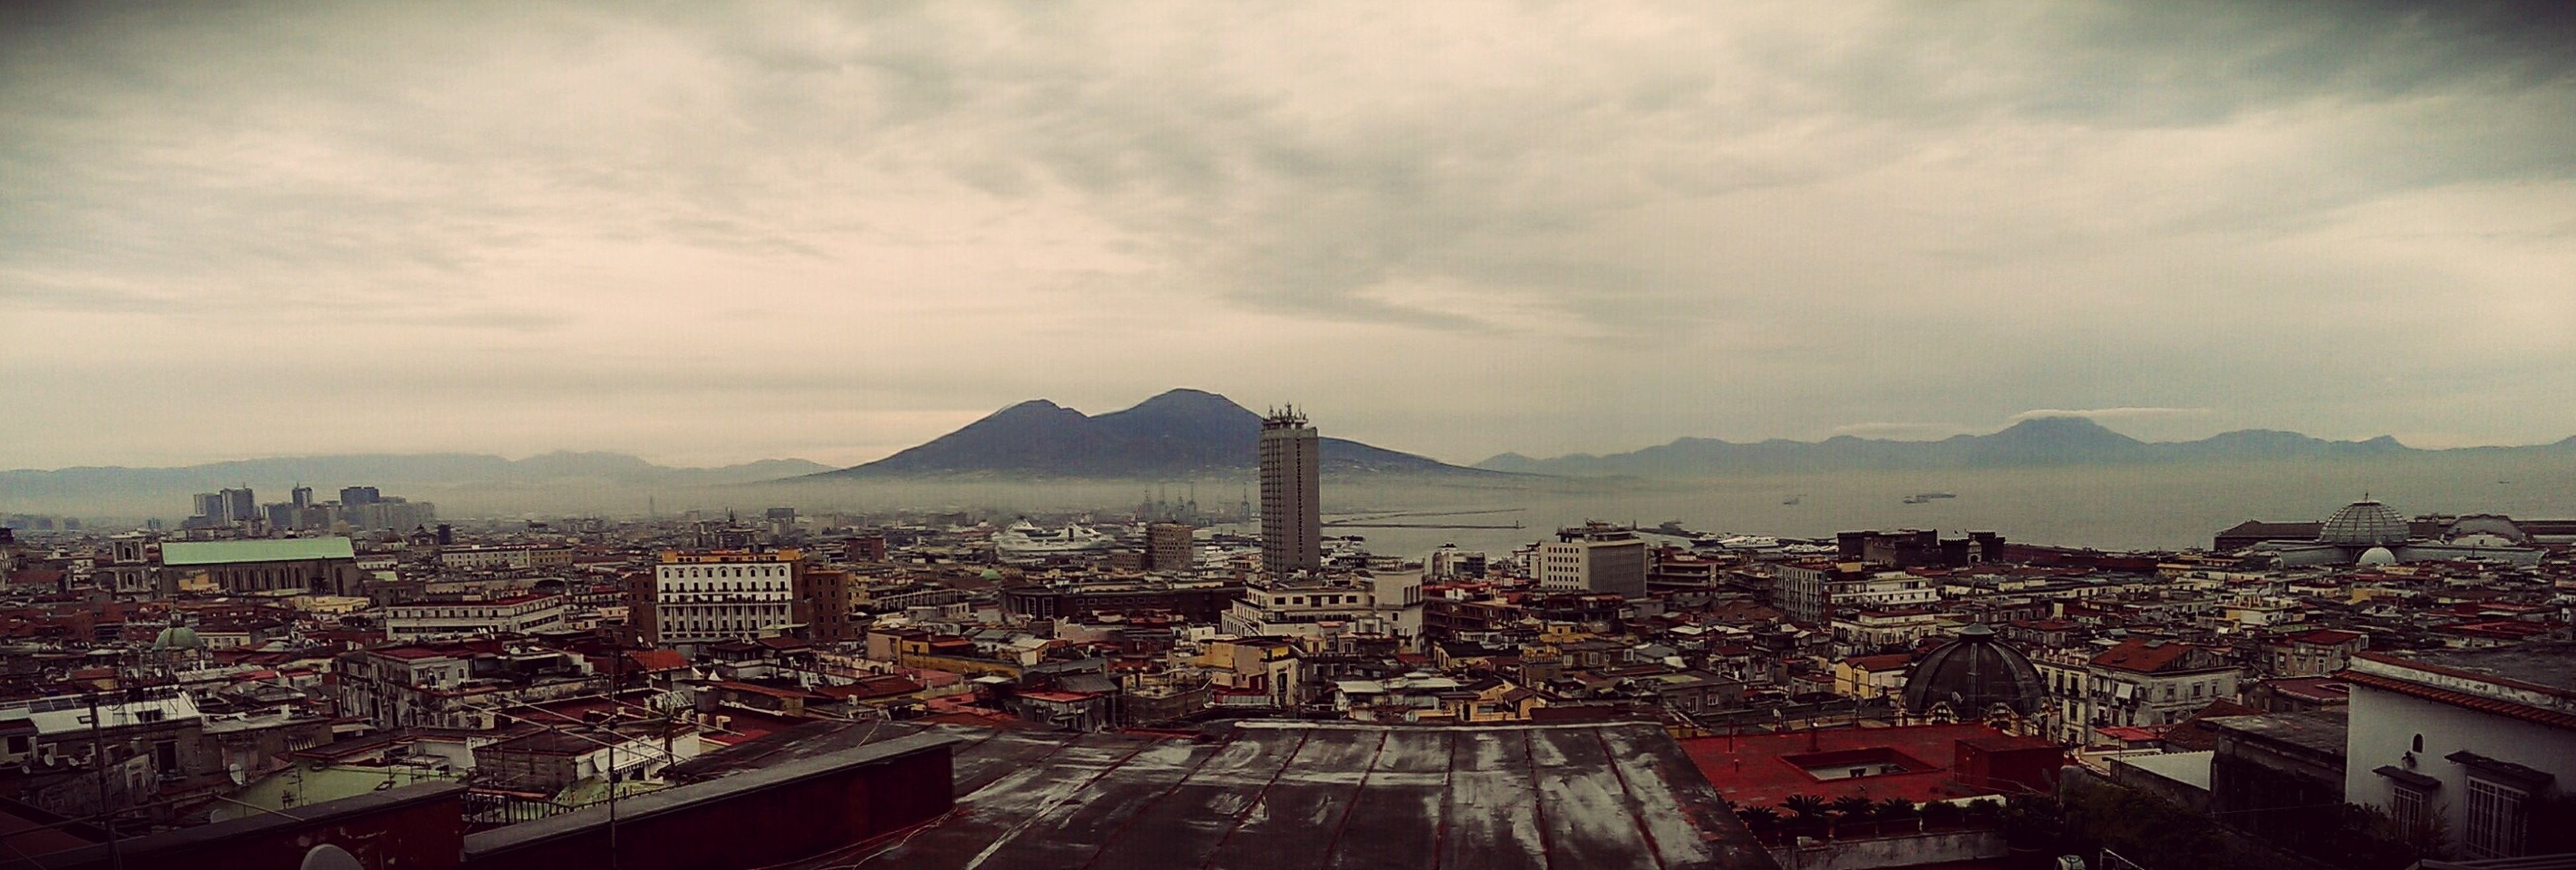 architecture, building exterior, built structure, cityscape, city, sky, cloud - sky, high angle view, crowded, residential district, cloudy, residential building, residential structure, mountain, cloud, city life, outdoors, road, no people, day